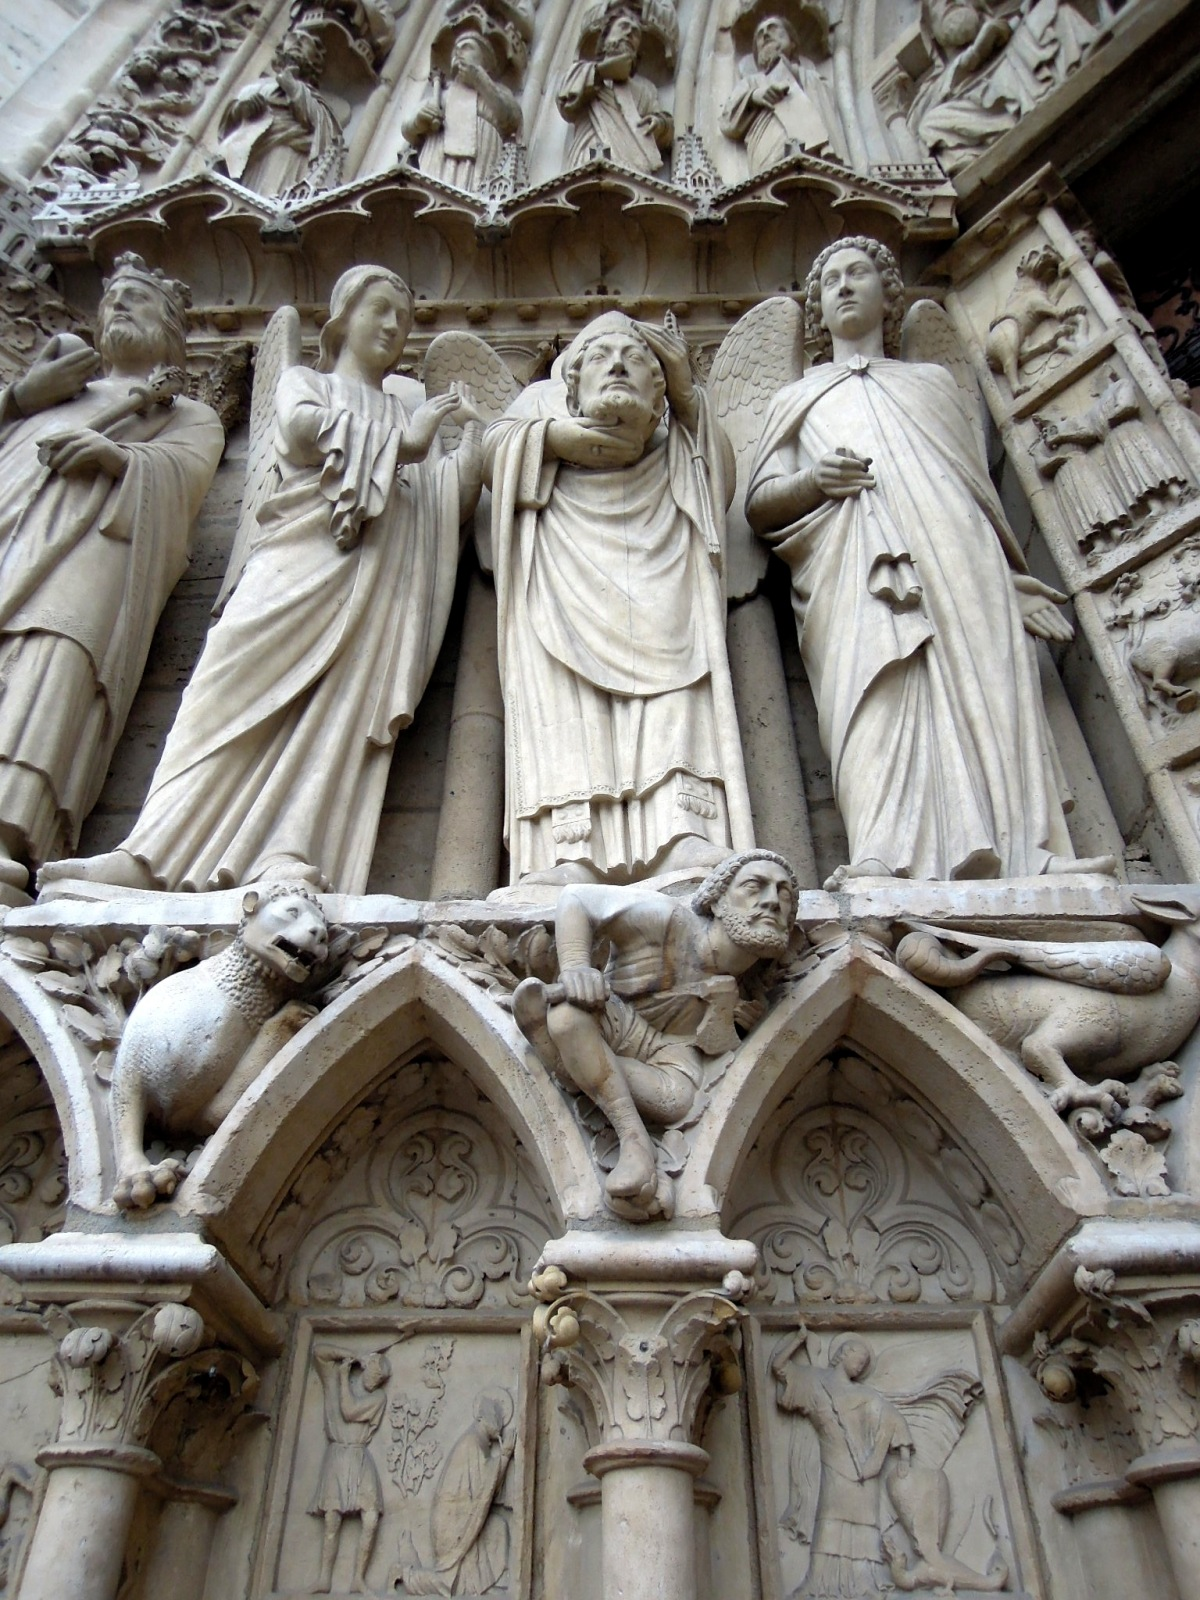 Elaborate carved statues on the side of the building exterior